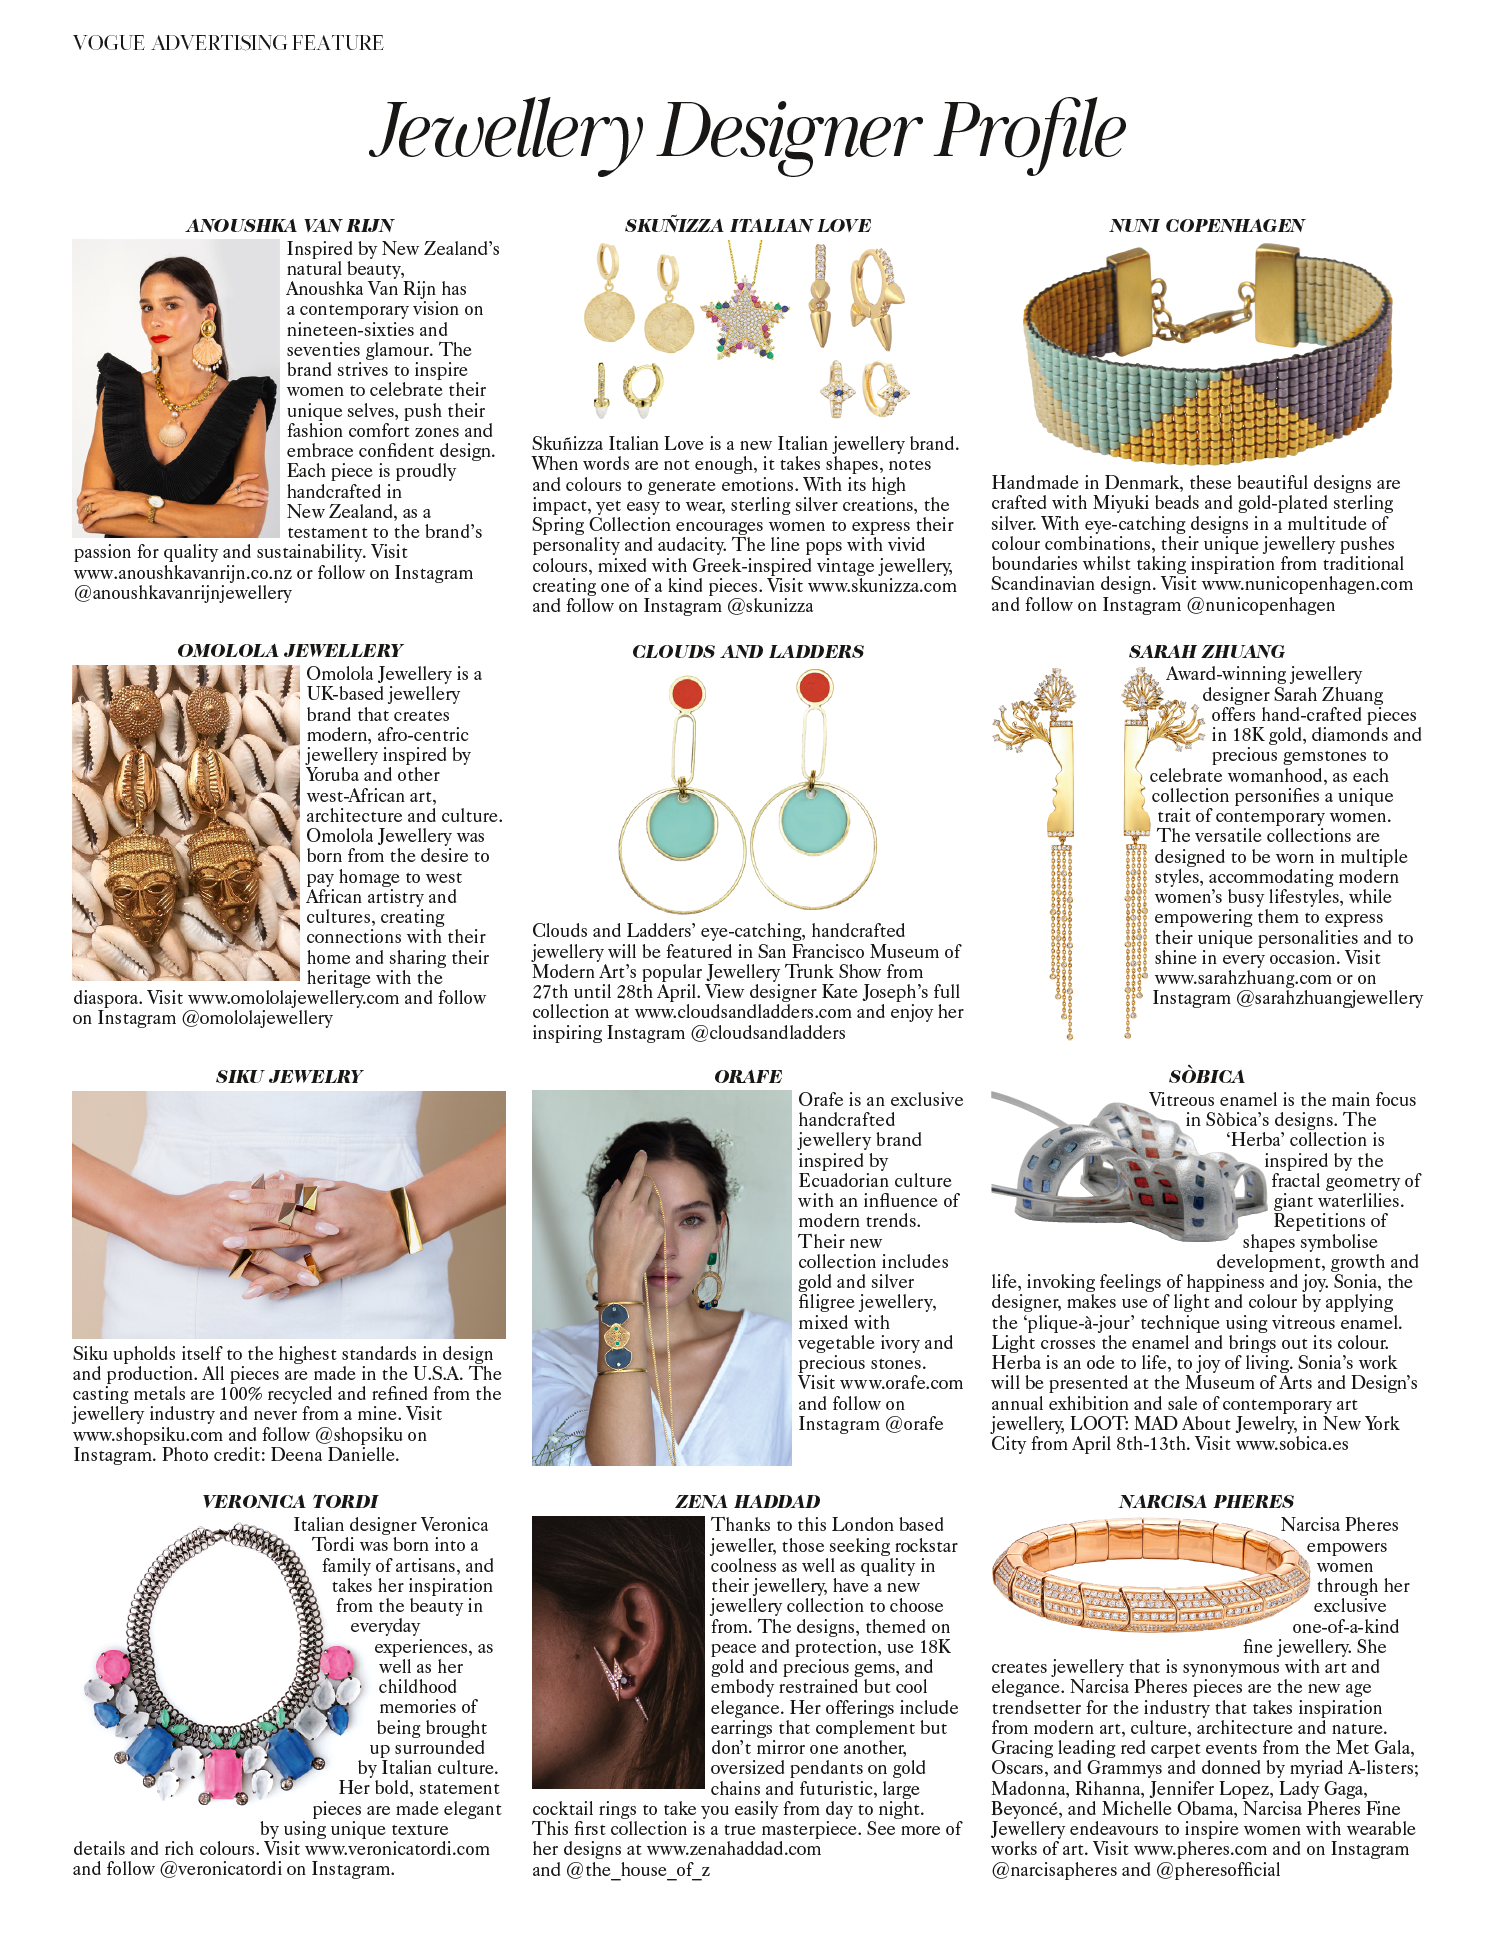 Siku Jewelry in British Vogue April 2019